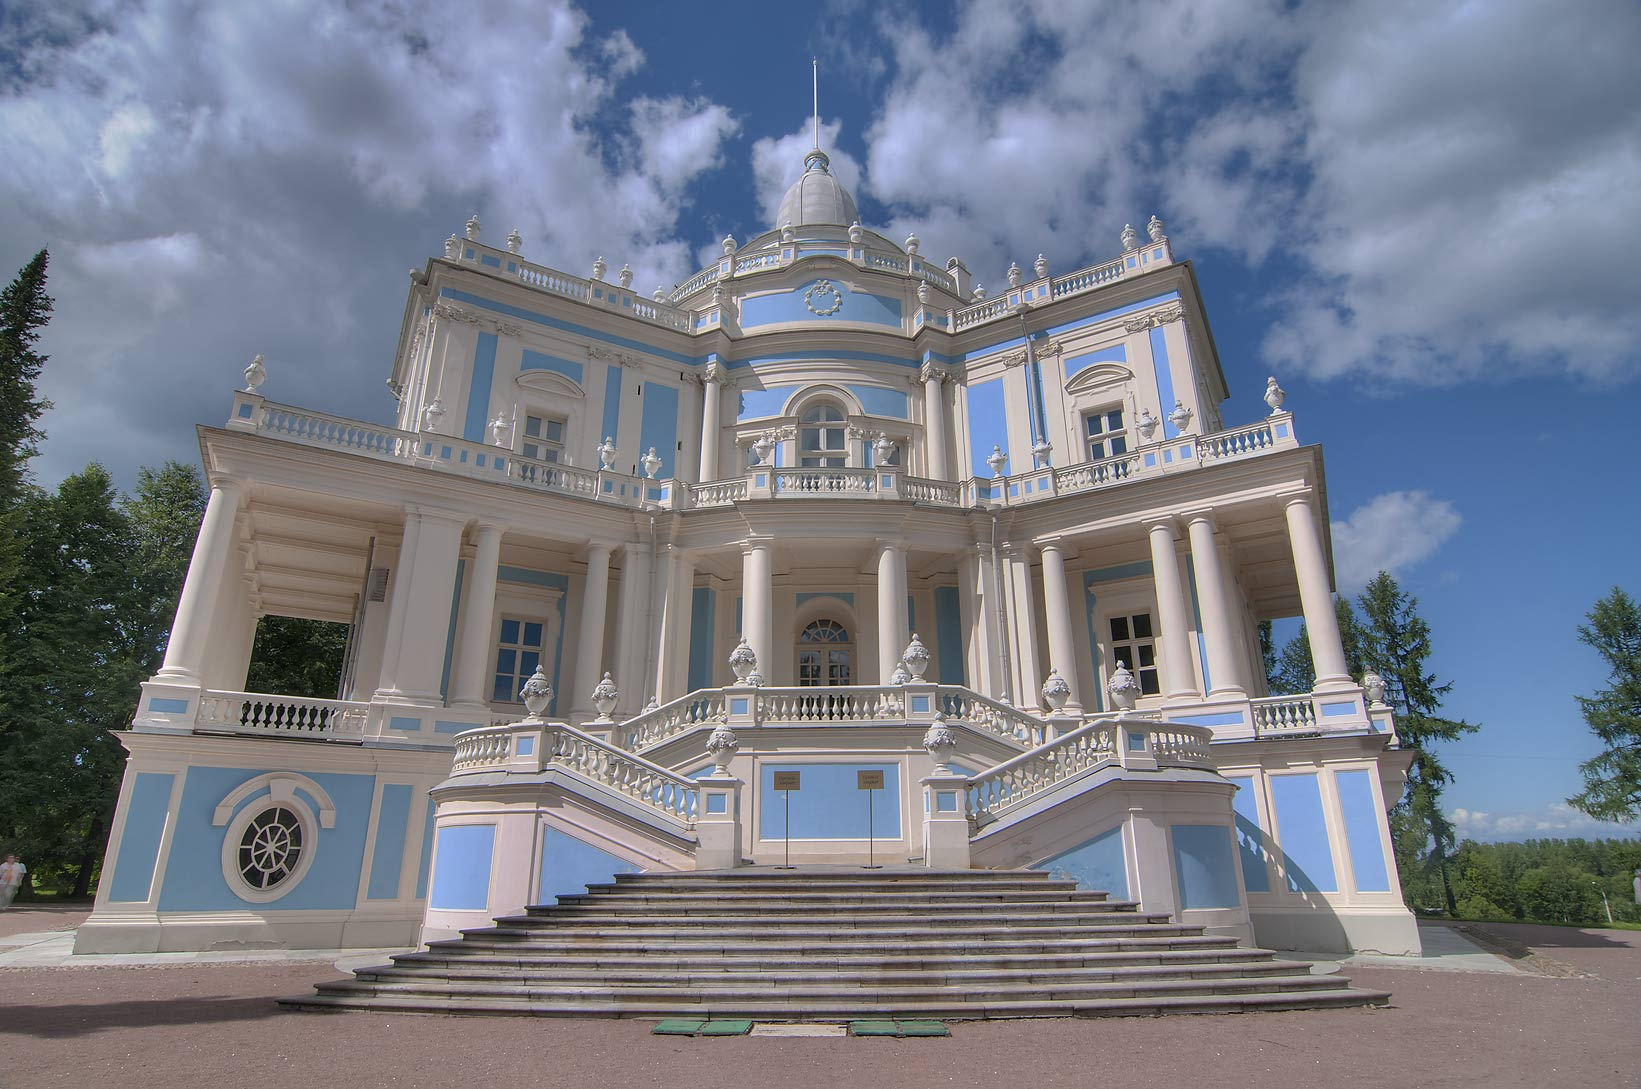 Pavilion Katalnaya Gorka in the park. Oranienbaum...miles west from St.Petersburg, Russia